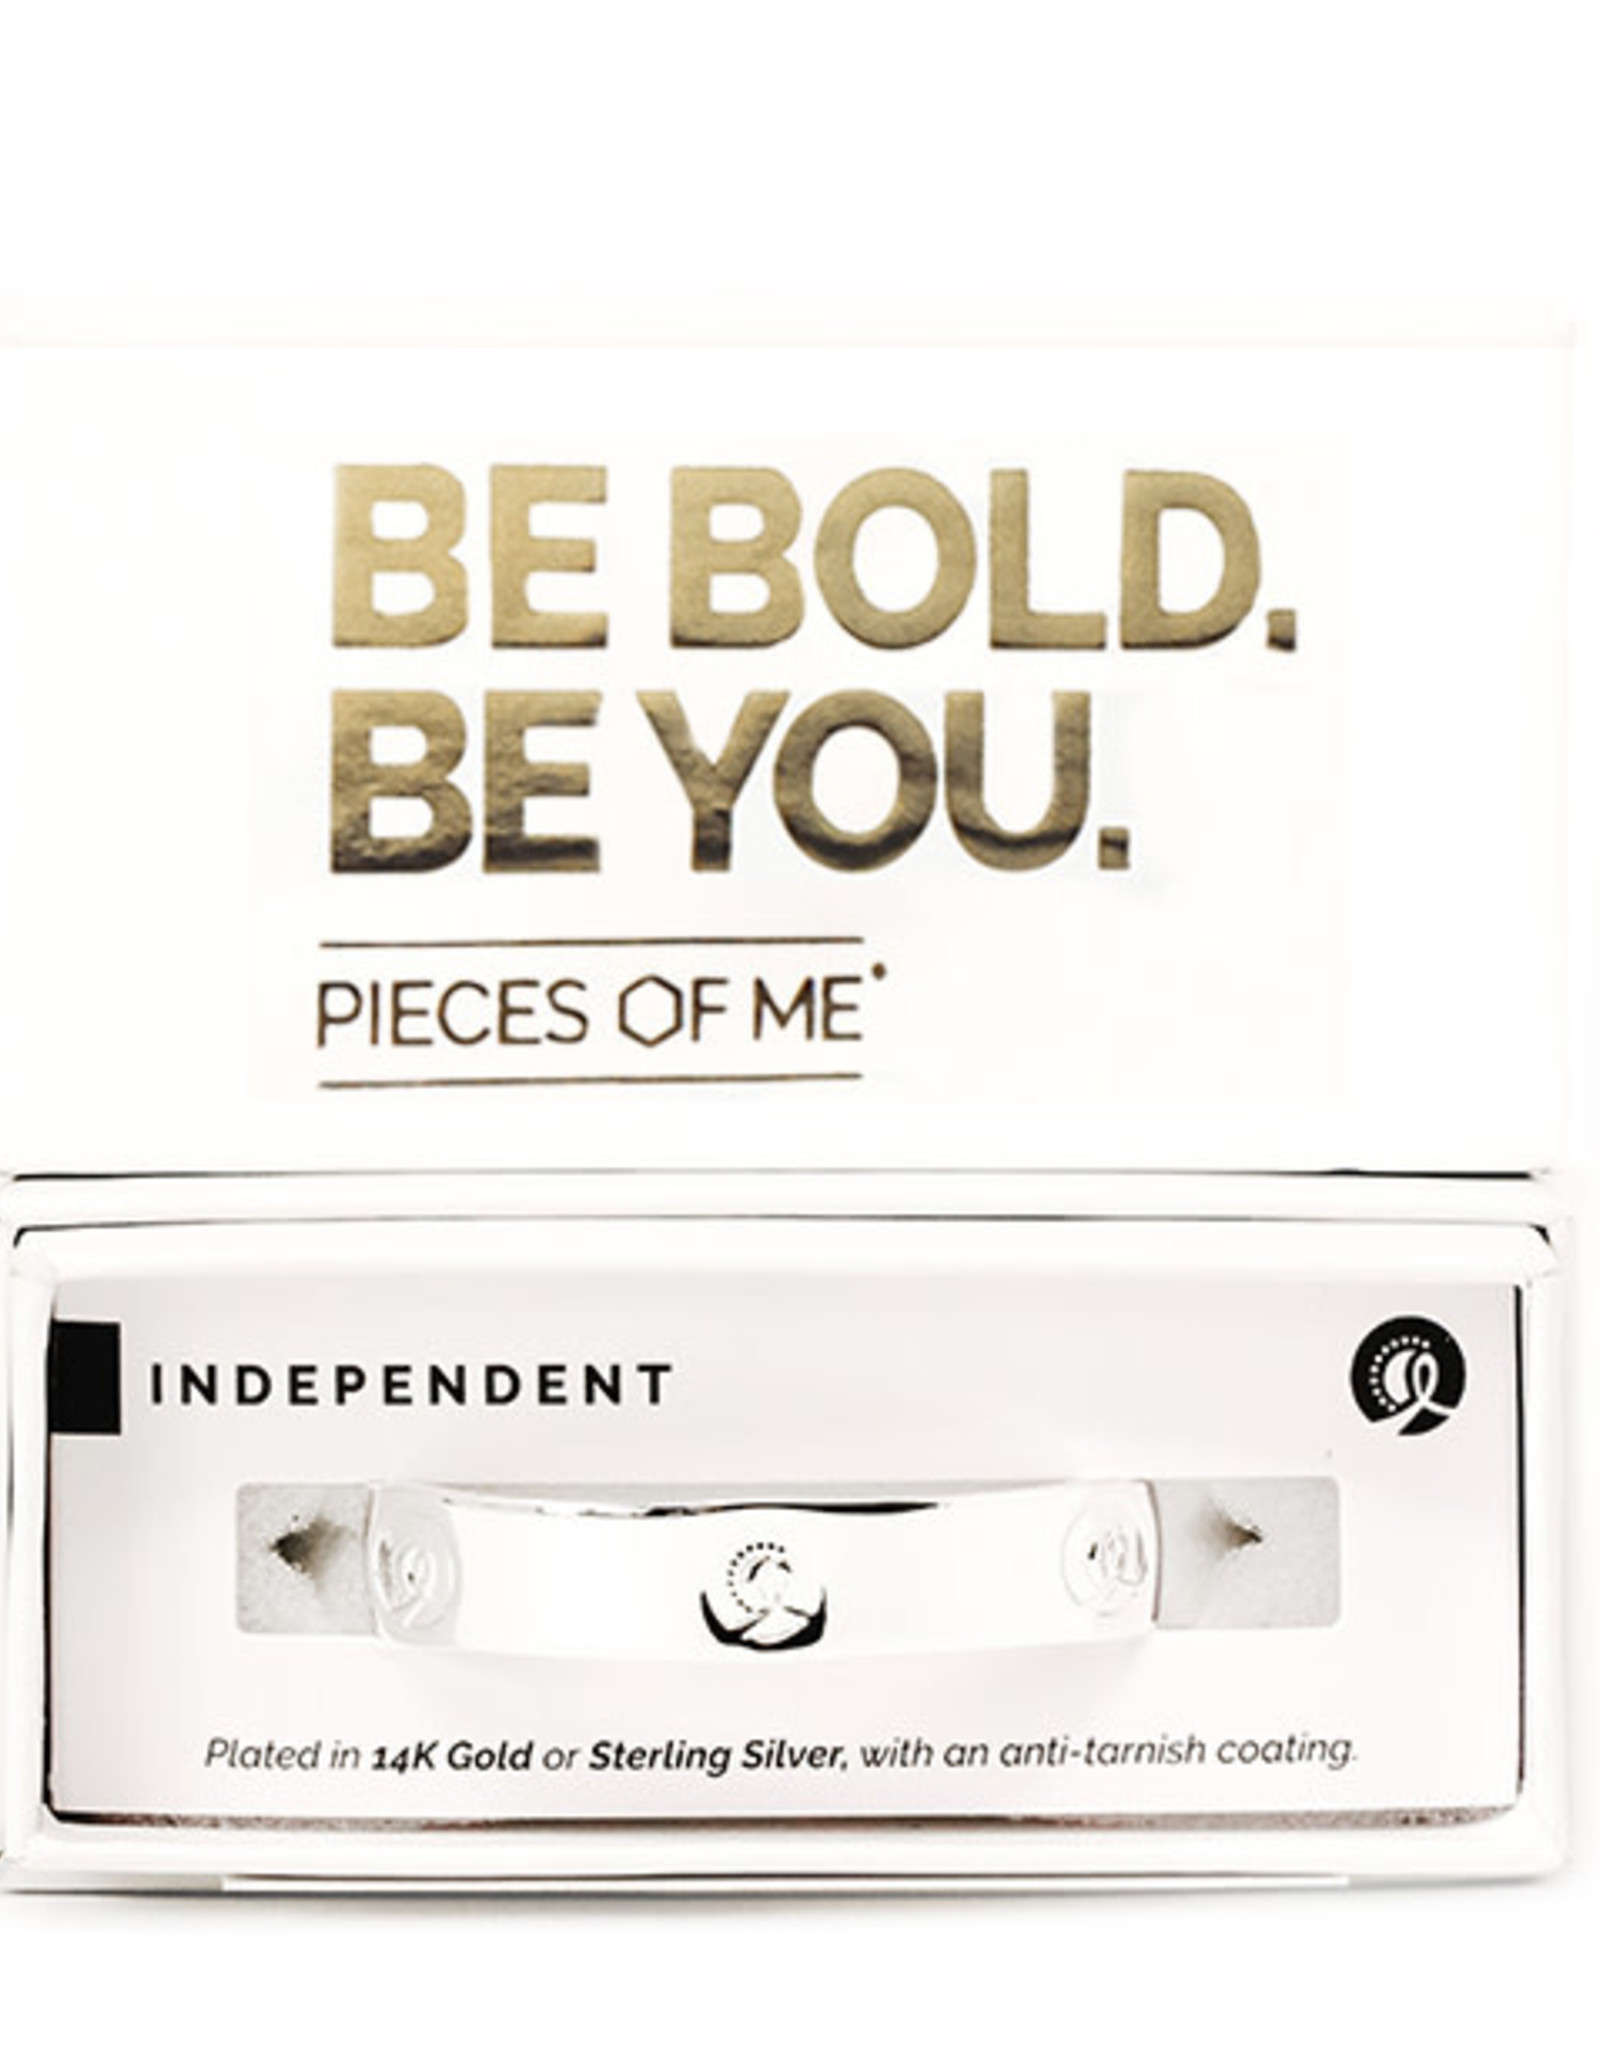 Pieces of Me Bracelet Independent Silver